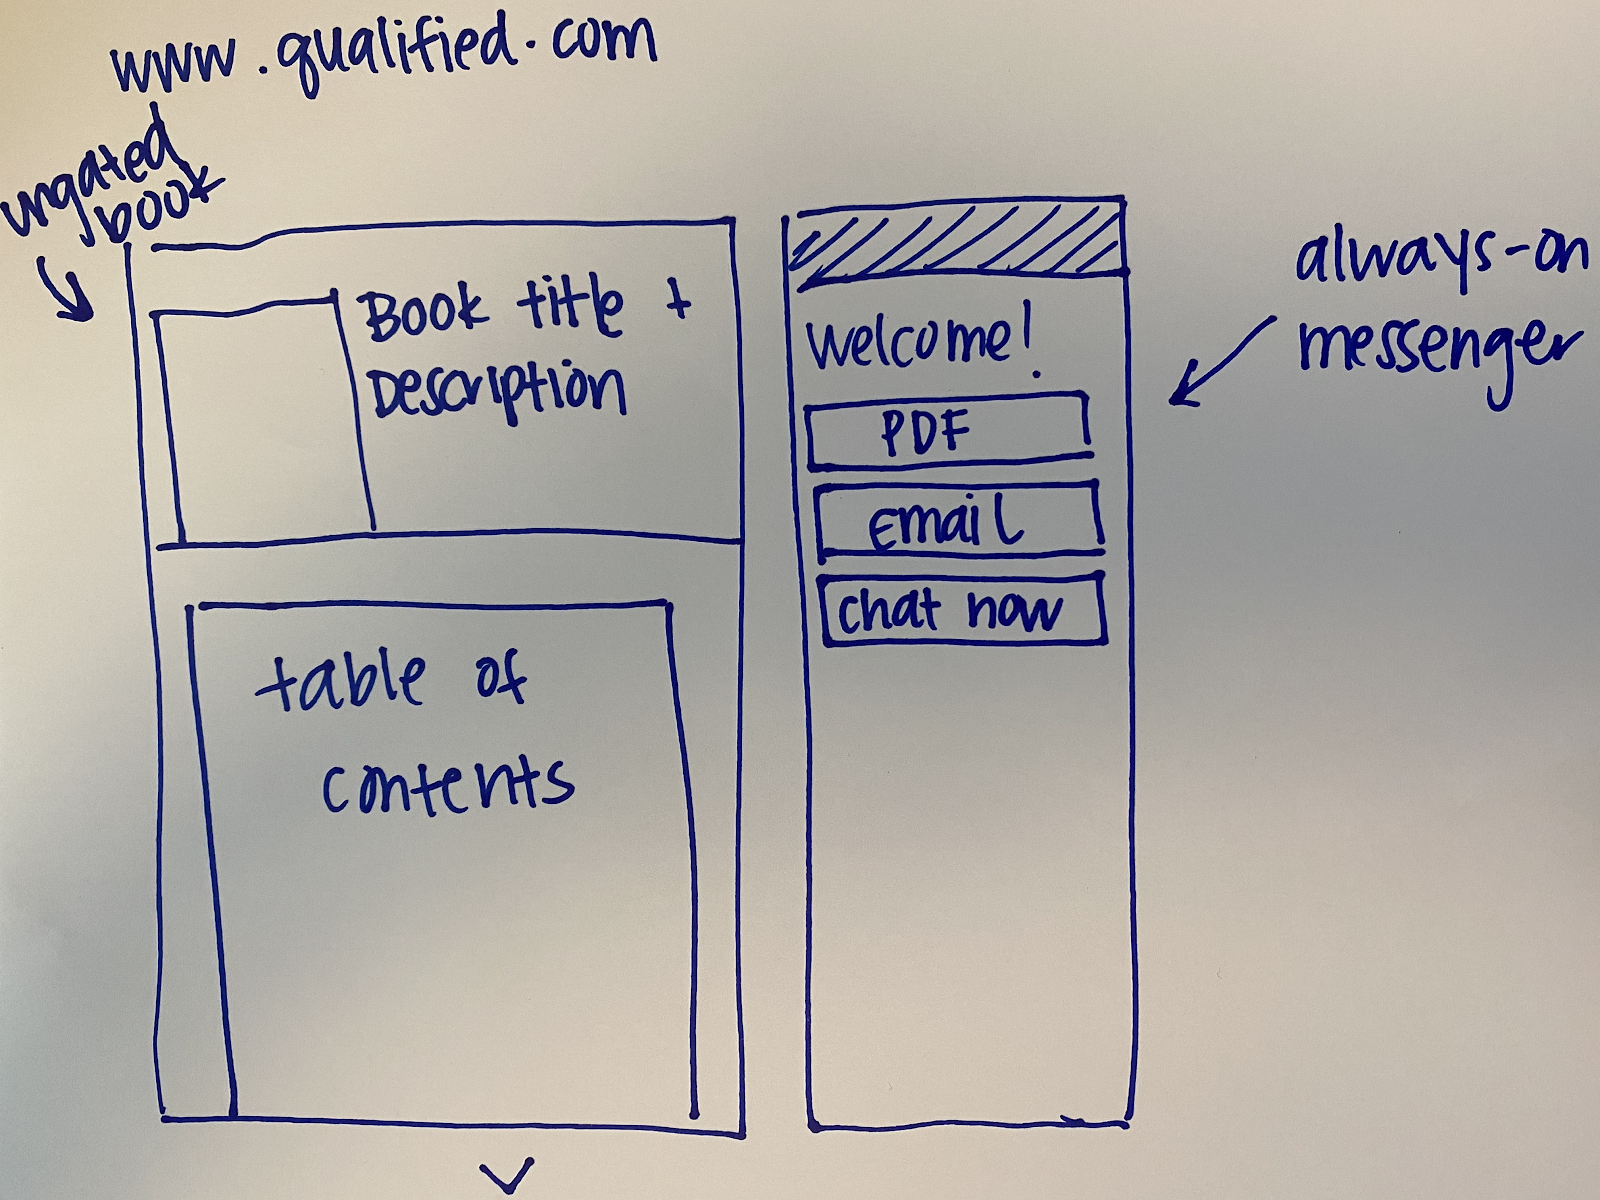 Qualified's vision for interactive Conversational Content